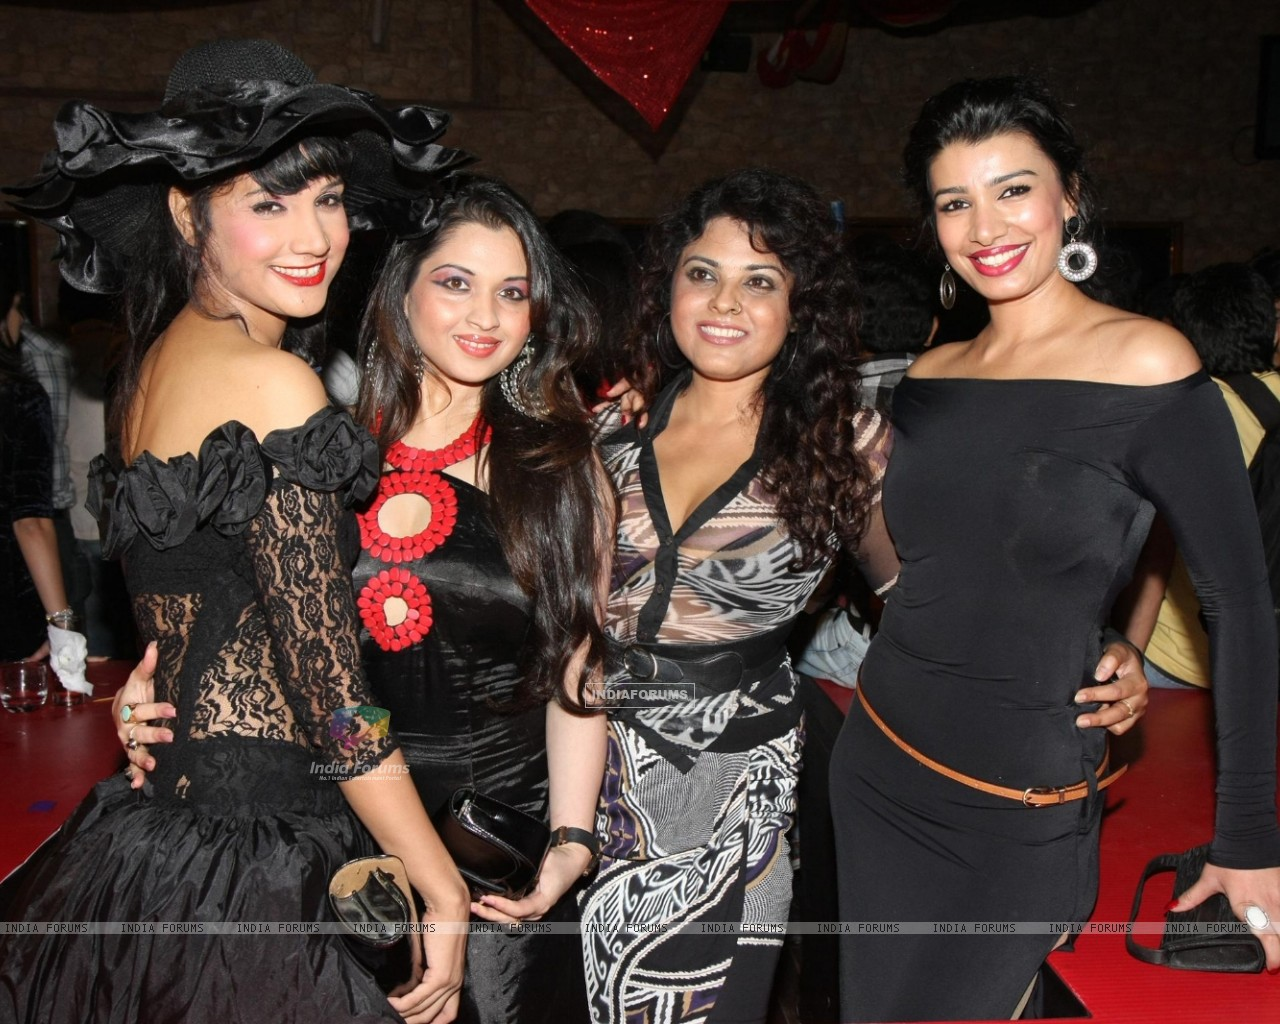 Mink Brar grace Rohit Verma's birthday bash with fashion show 'Hare' at Novotel (168333) size:1280x1024